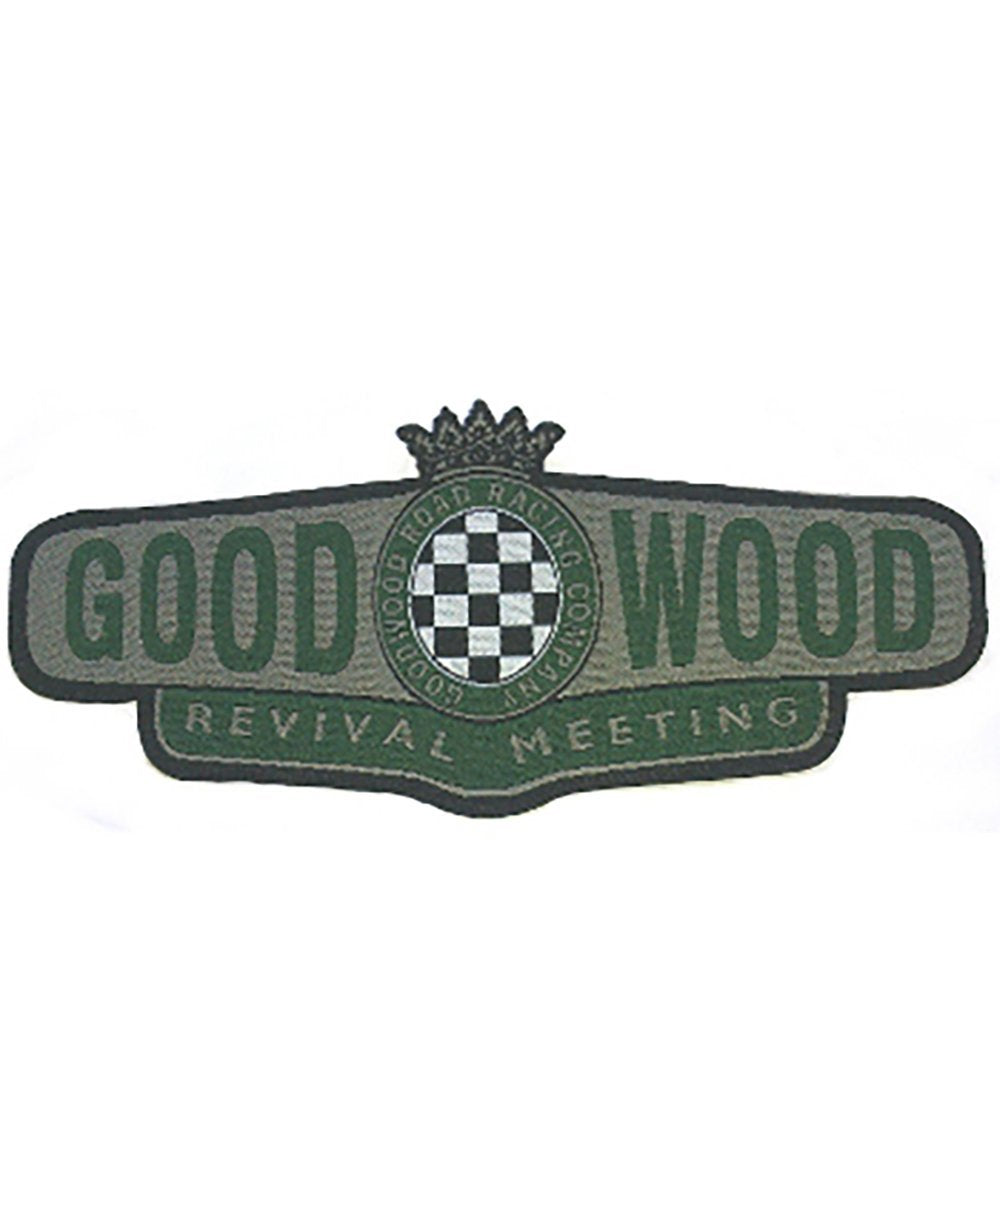 Goodwood Revival Iron On Badge